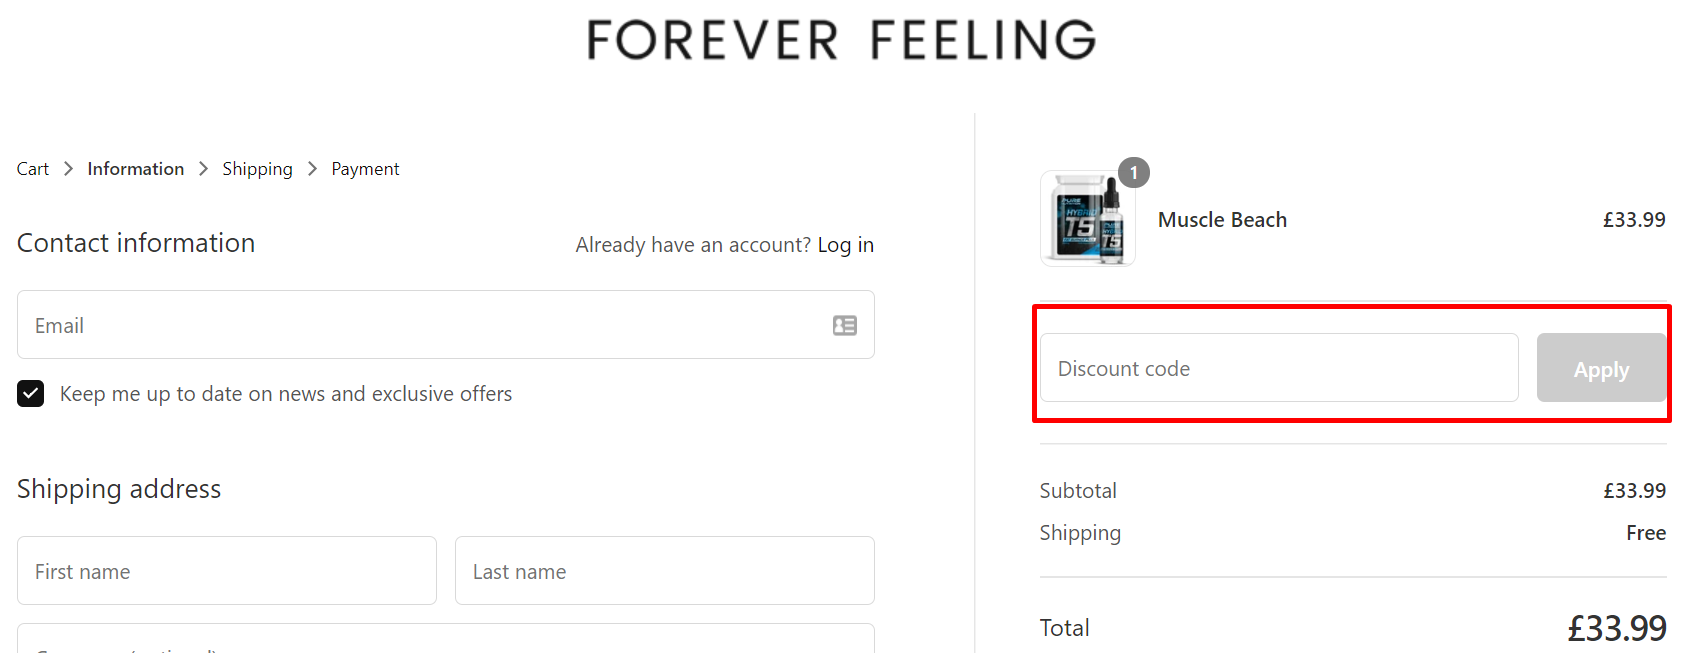 How do I use my Forever Feeling discount code?